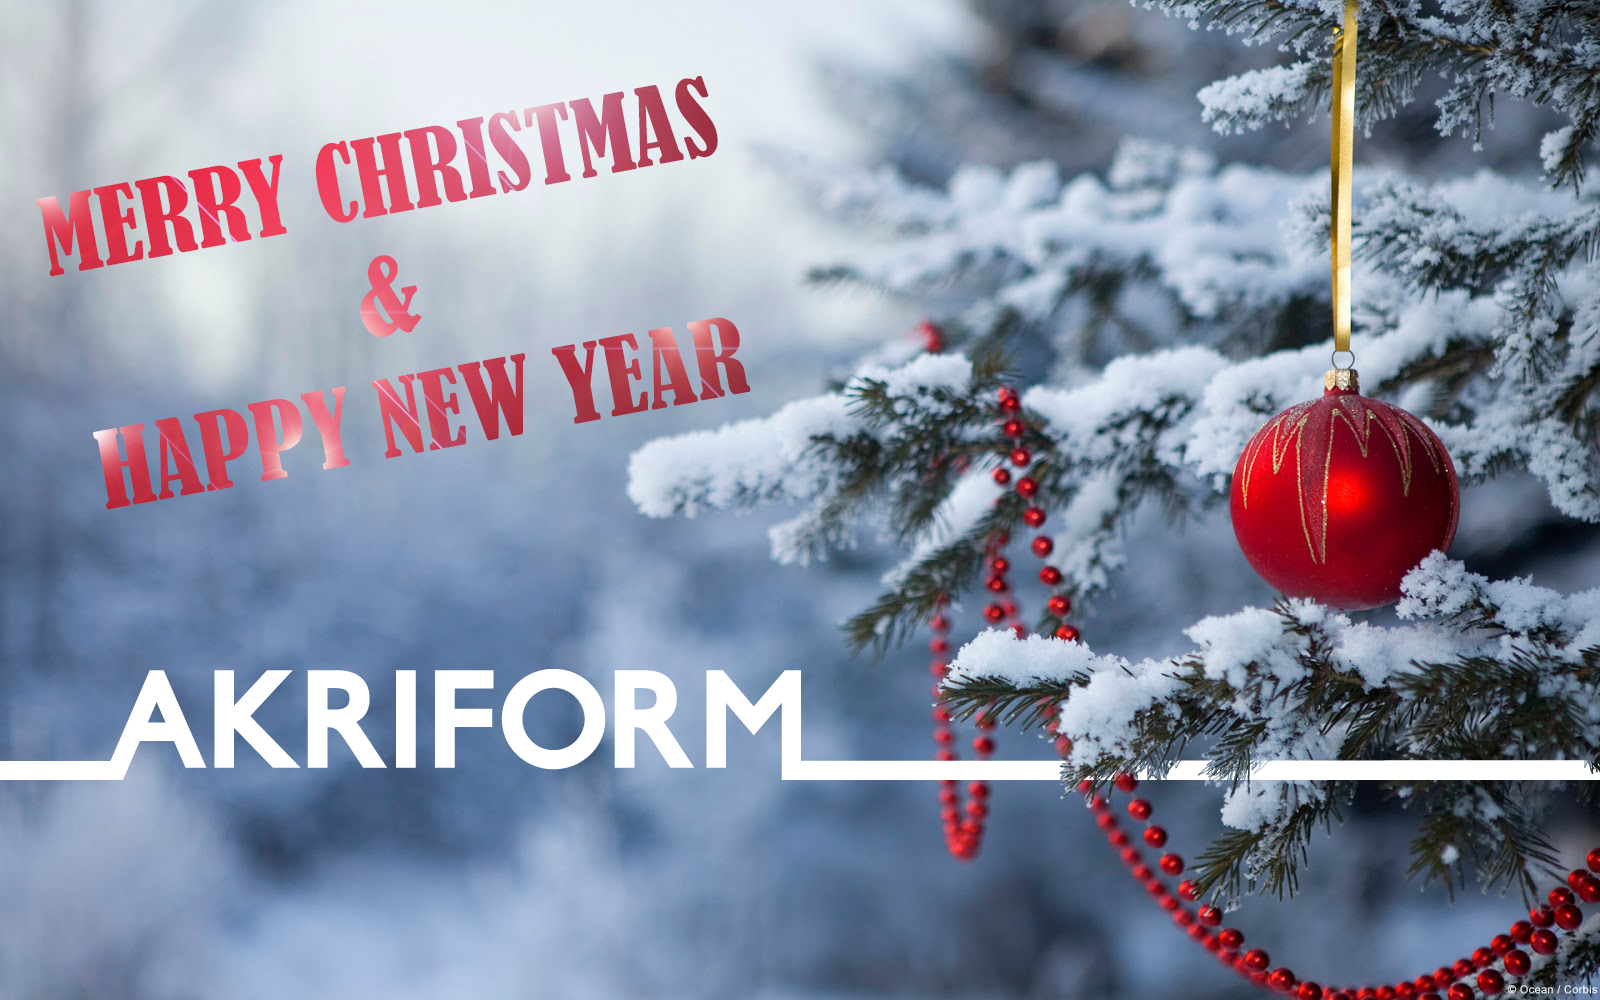 Merry Christmas from Akriform